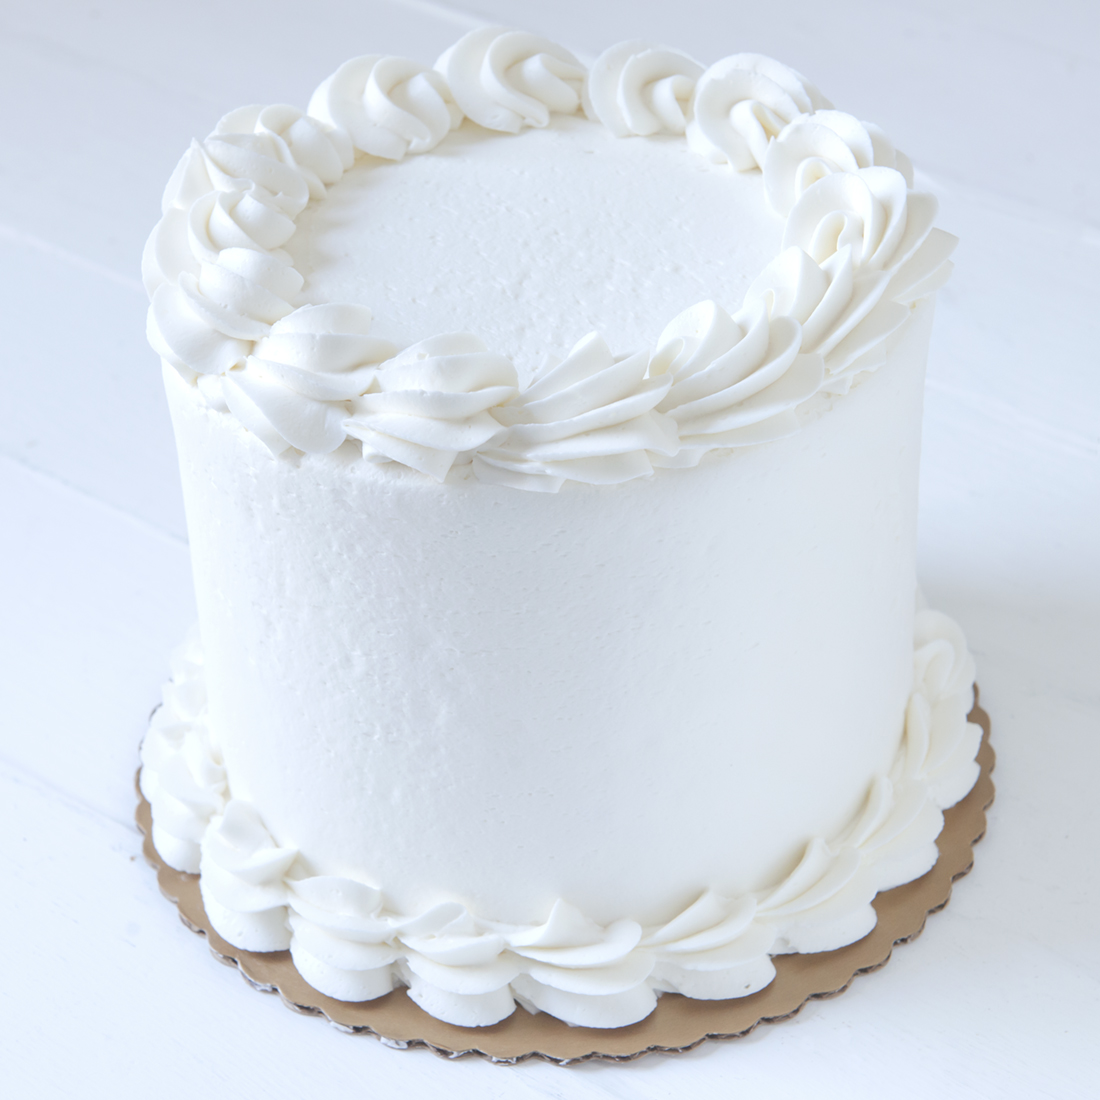 Vanilla Raspberry* - Vanilla cake, filled with raspberry jam filling, frosted with fresh whipped cream6